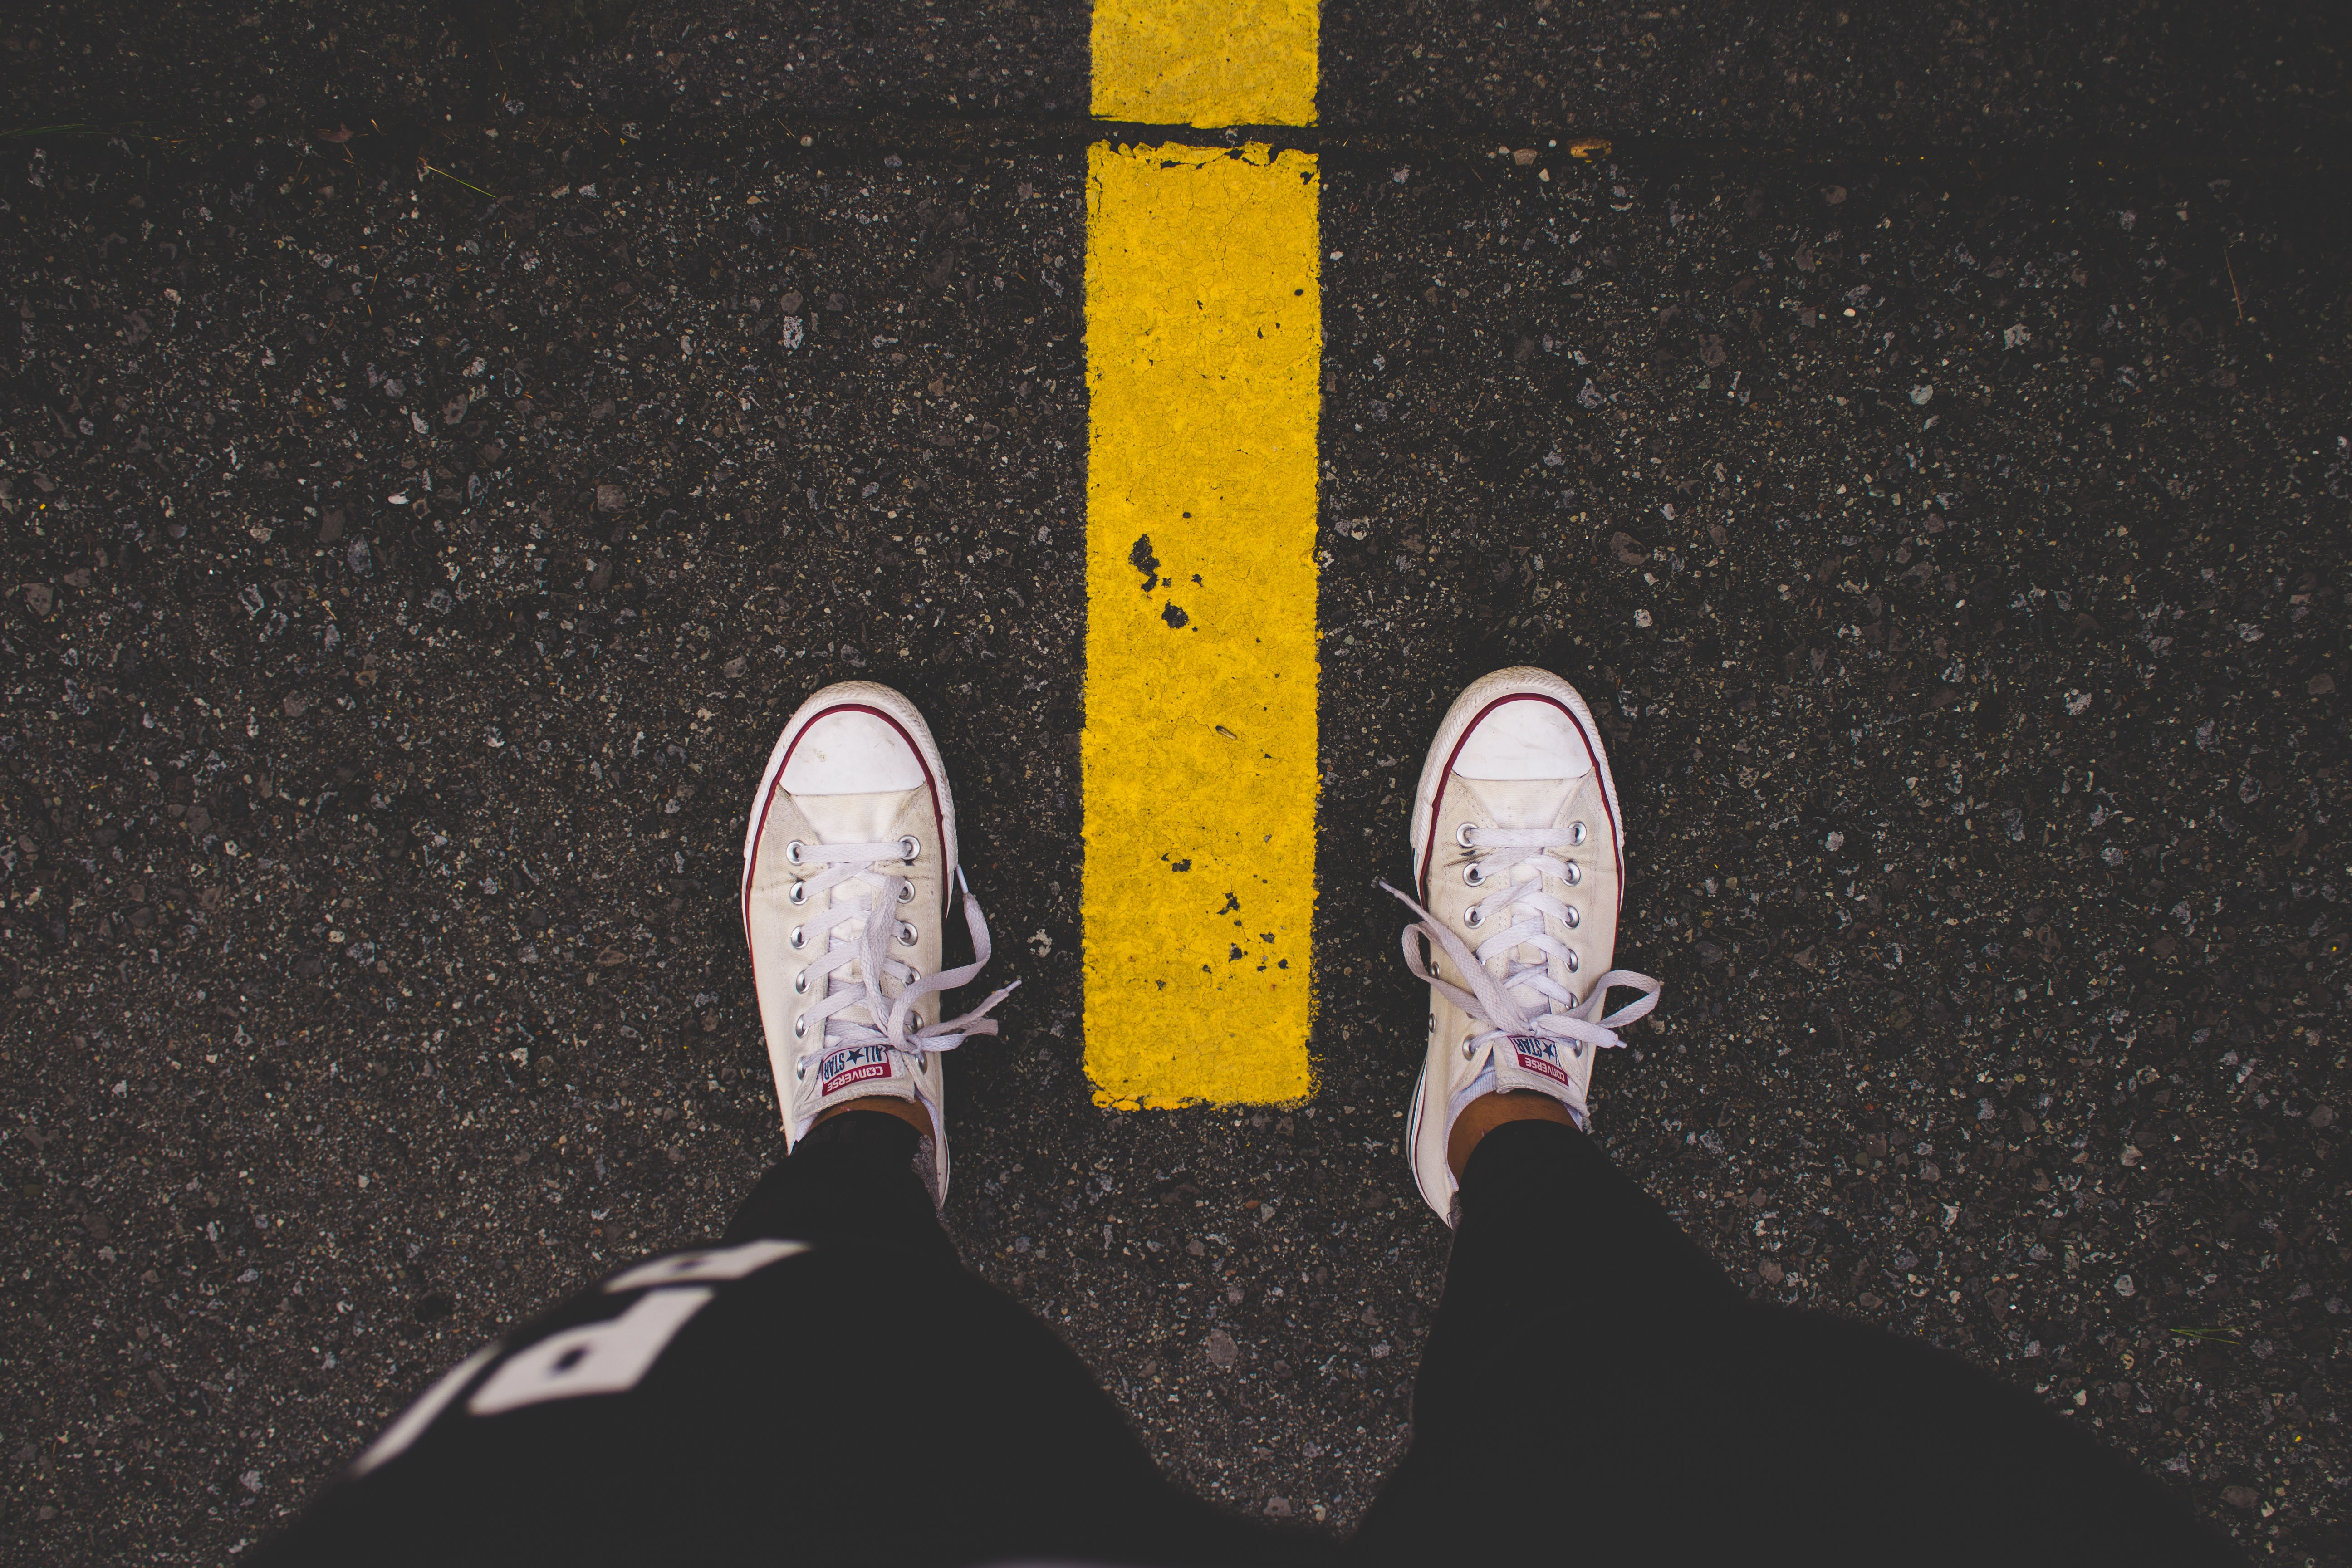 A man staring down at his shoes, each on one side of the yellow street line